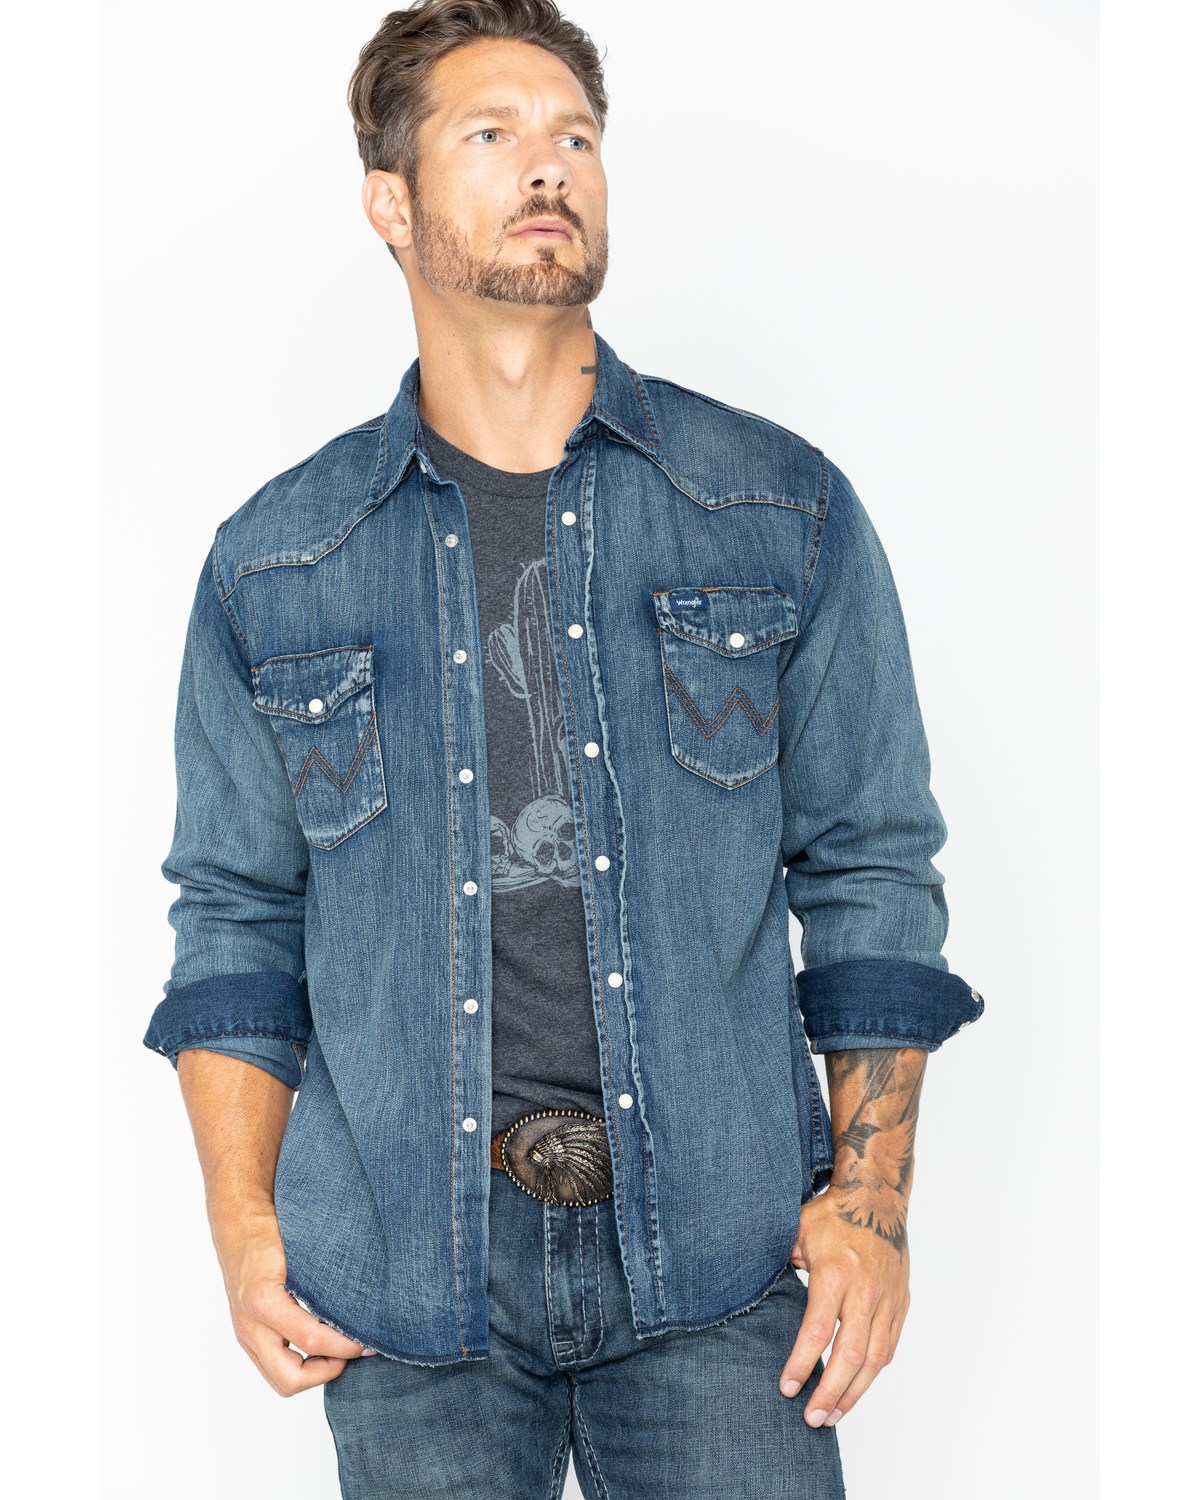 384155f36a Wrangler Cowboy Cut Men s Long Sleeve Denim Work Shirt